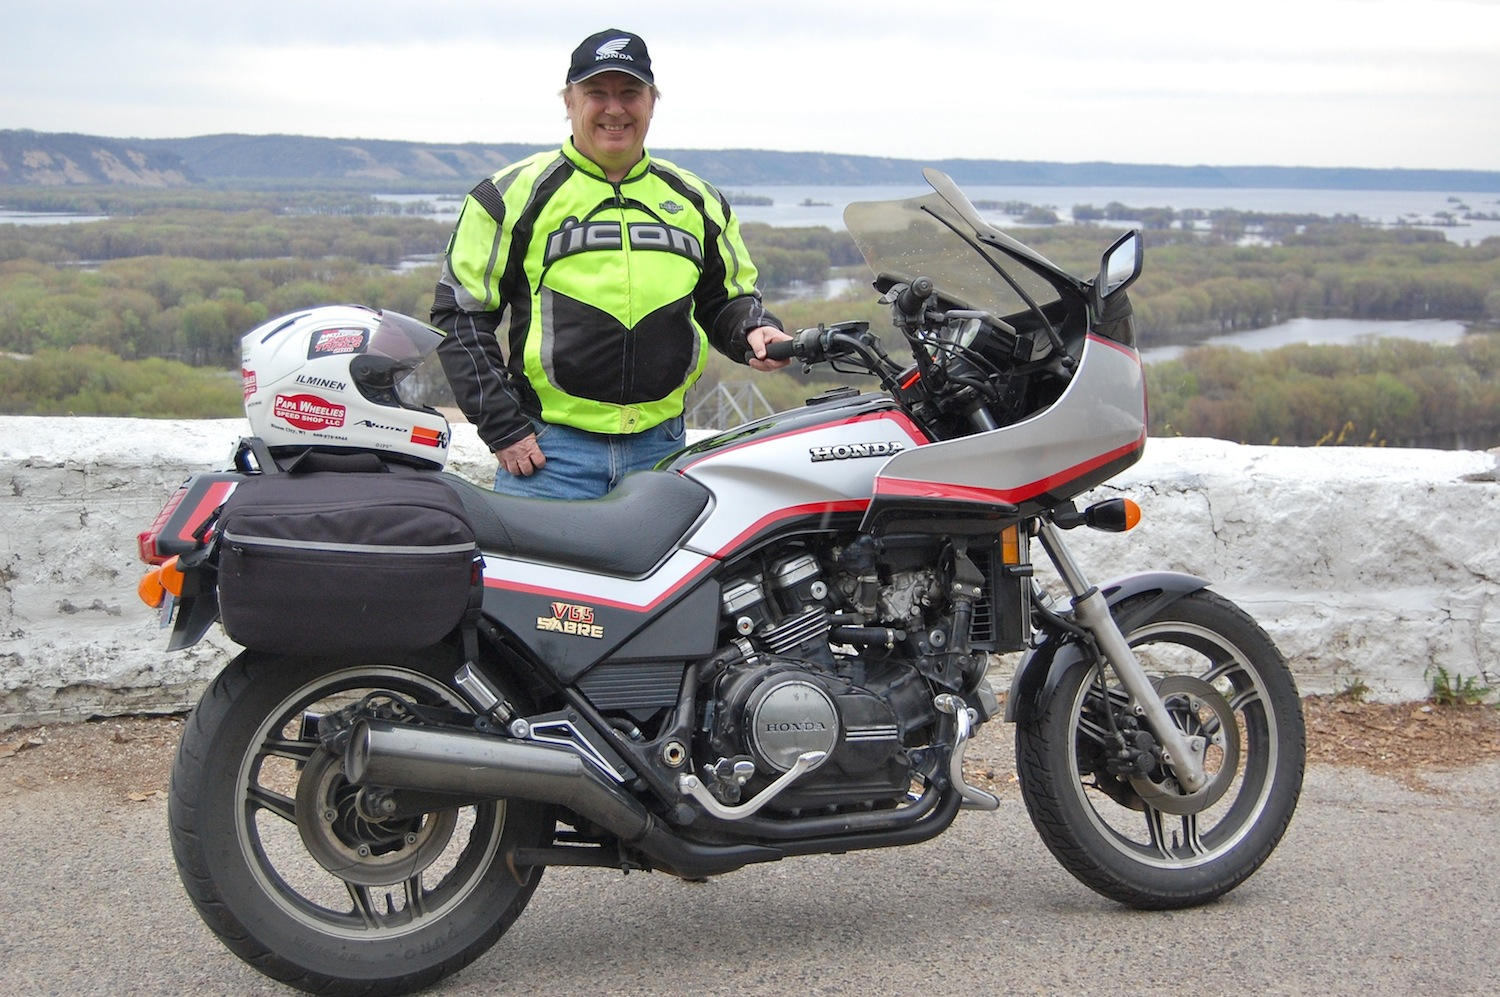 1984 Honda VF1100S above the Mississippi River